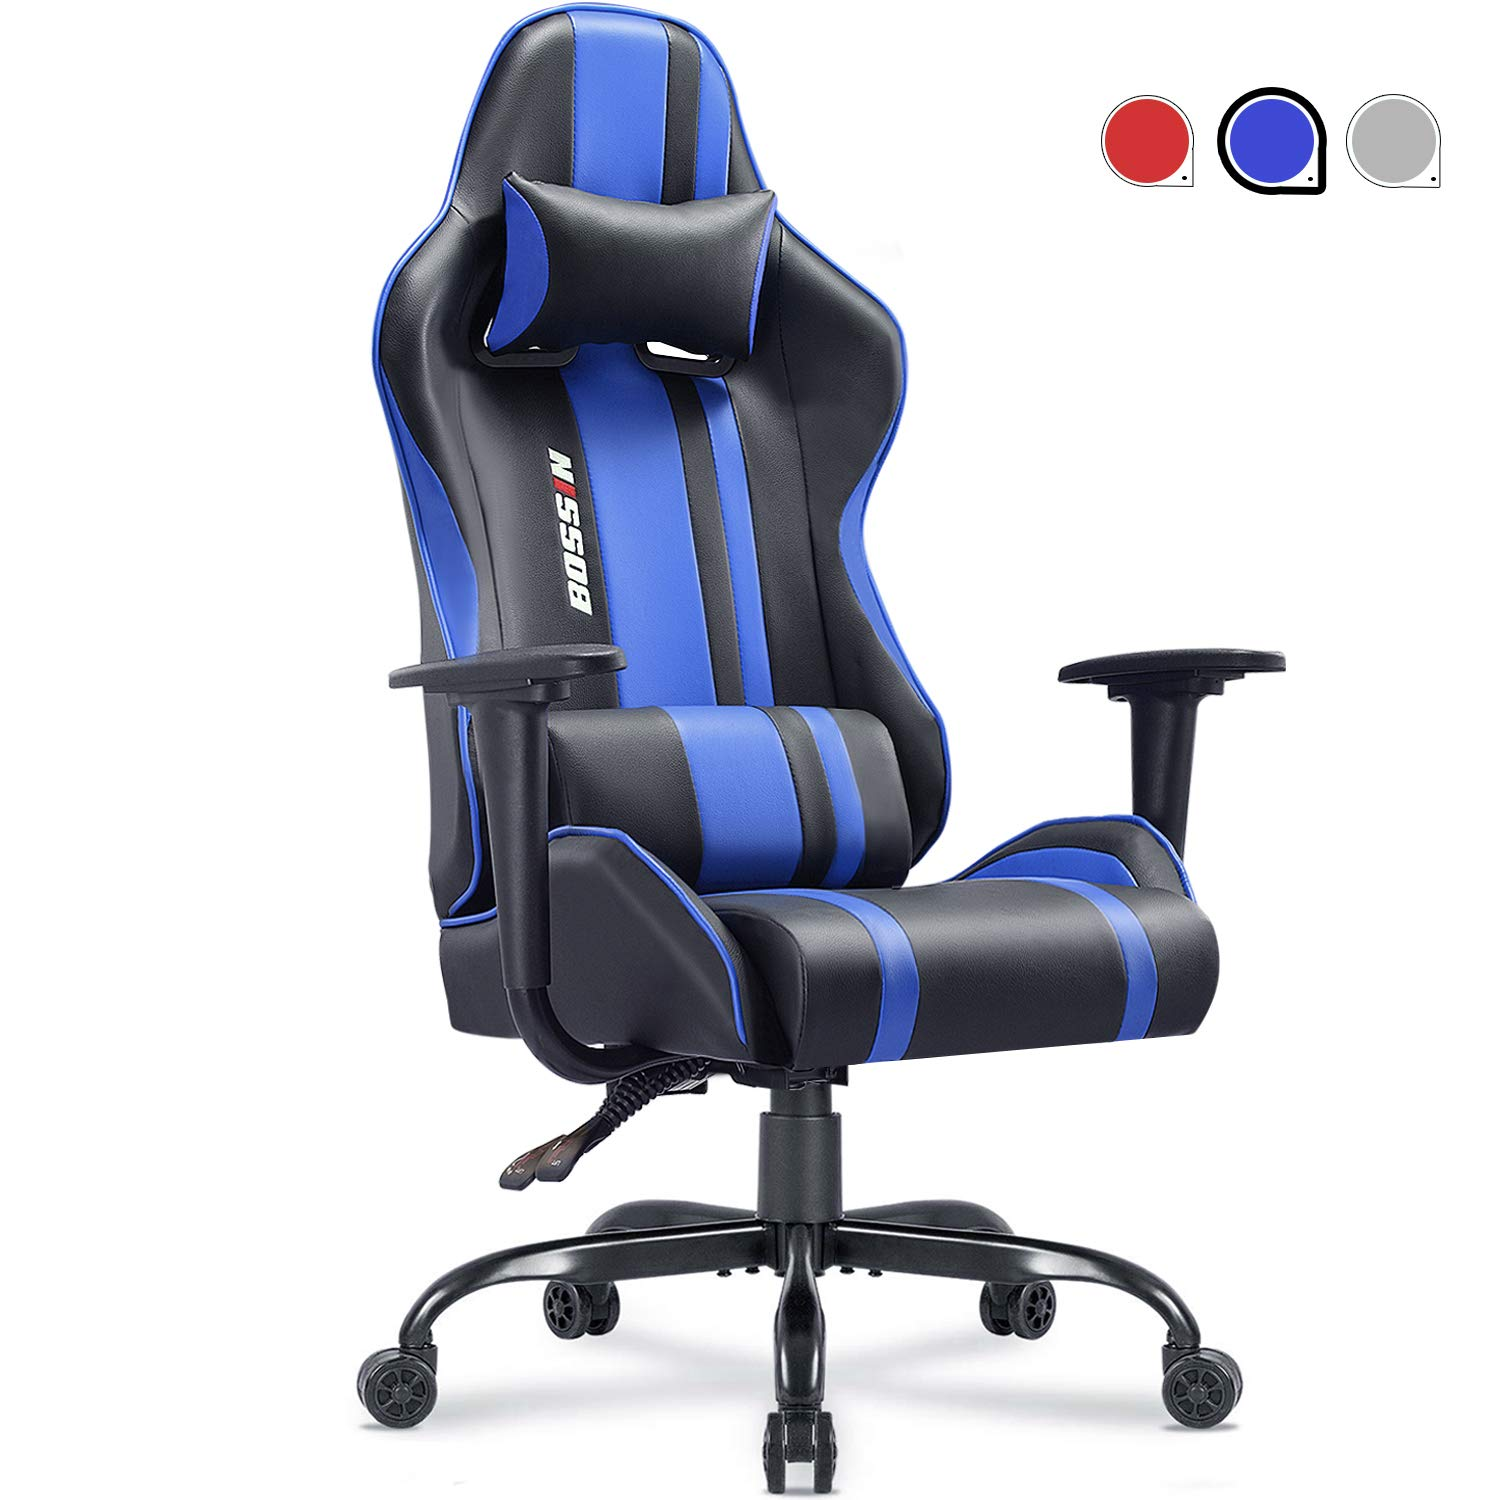 Gaming Chair Racing Style Office Chair Adjustable Height Chair Ergonomics High-Back Chair PU Leather Gaming Chair Swivel PC Computer Chair with Headrest and Lumbar Support Blue